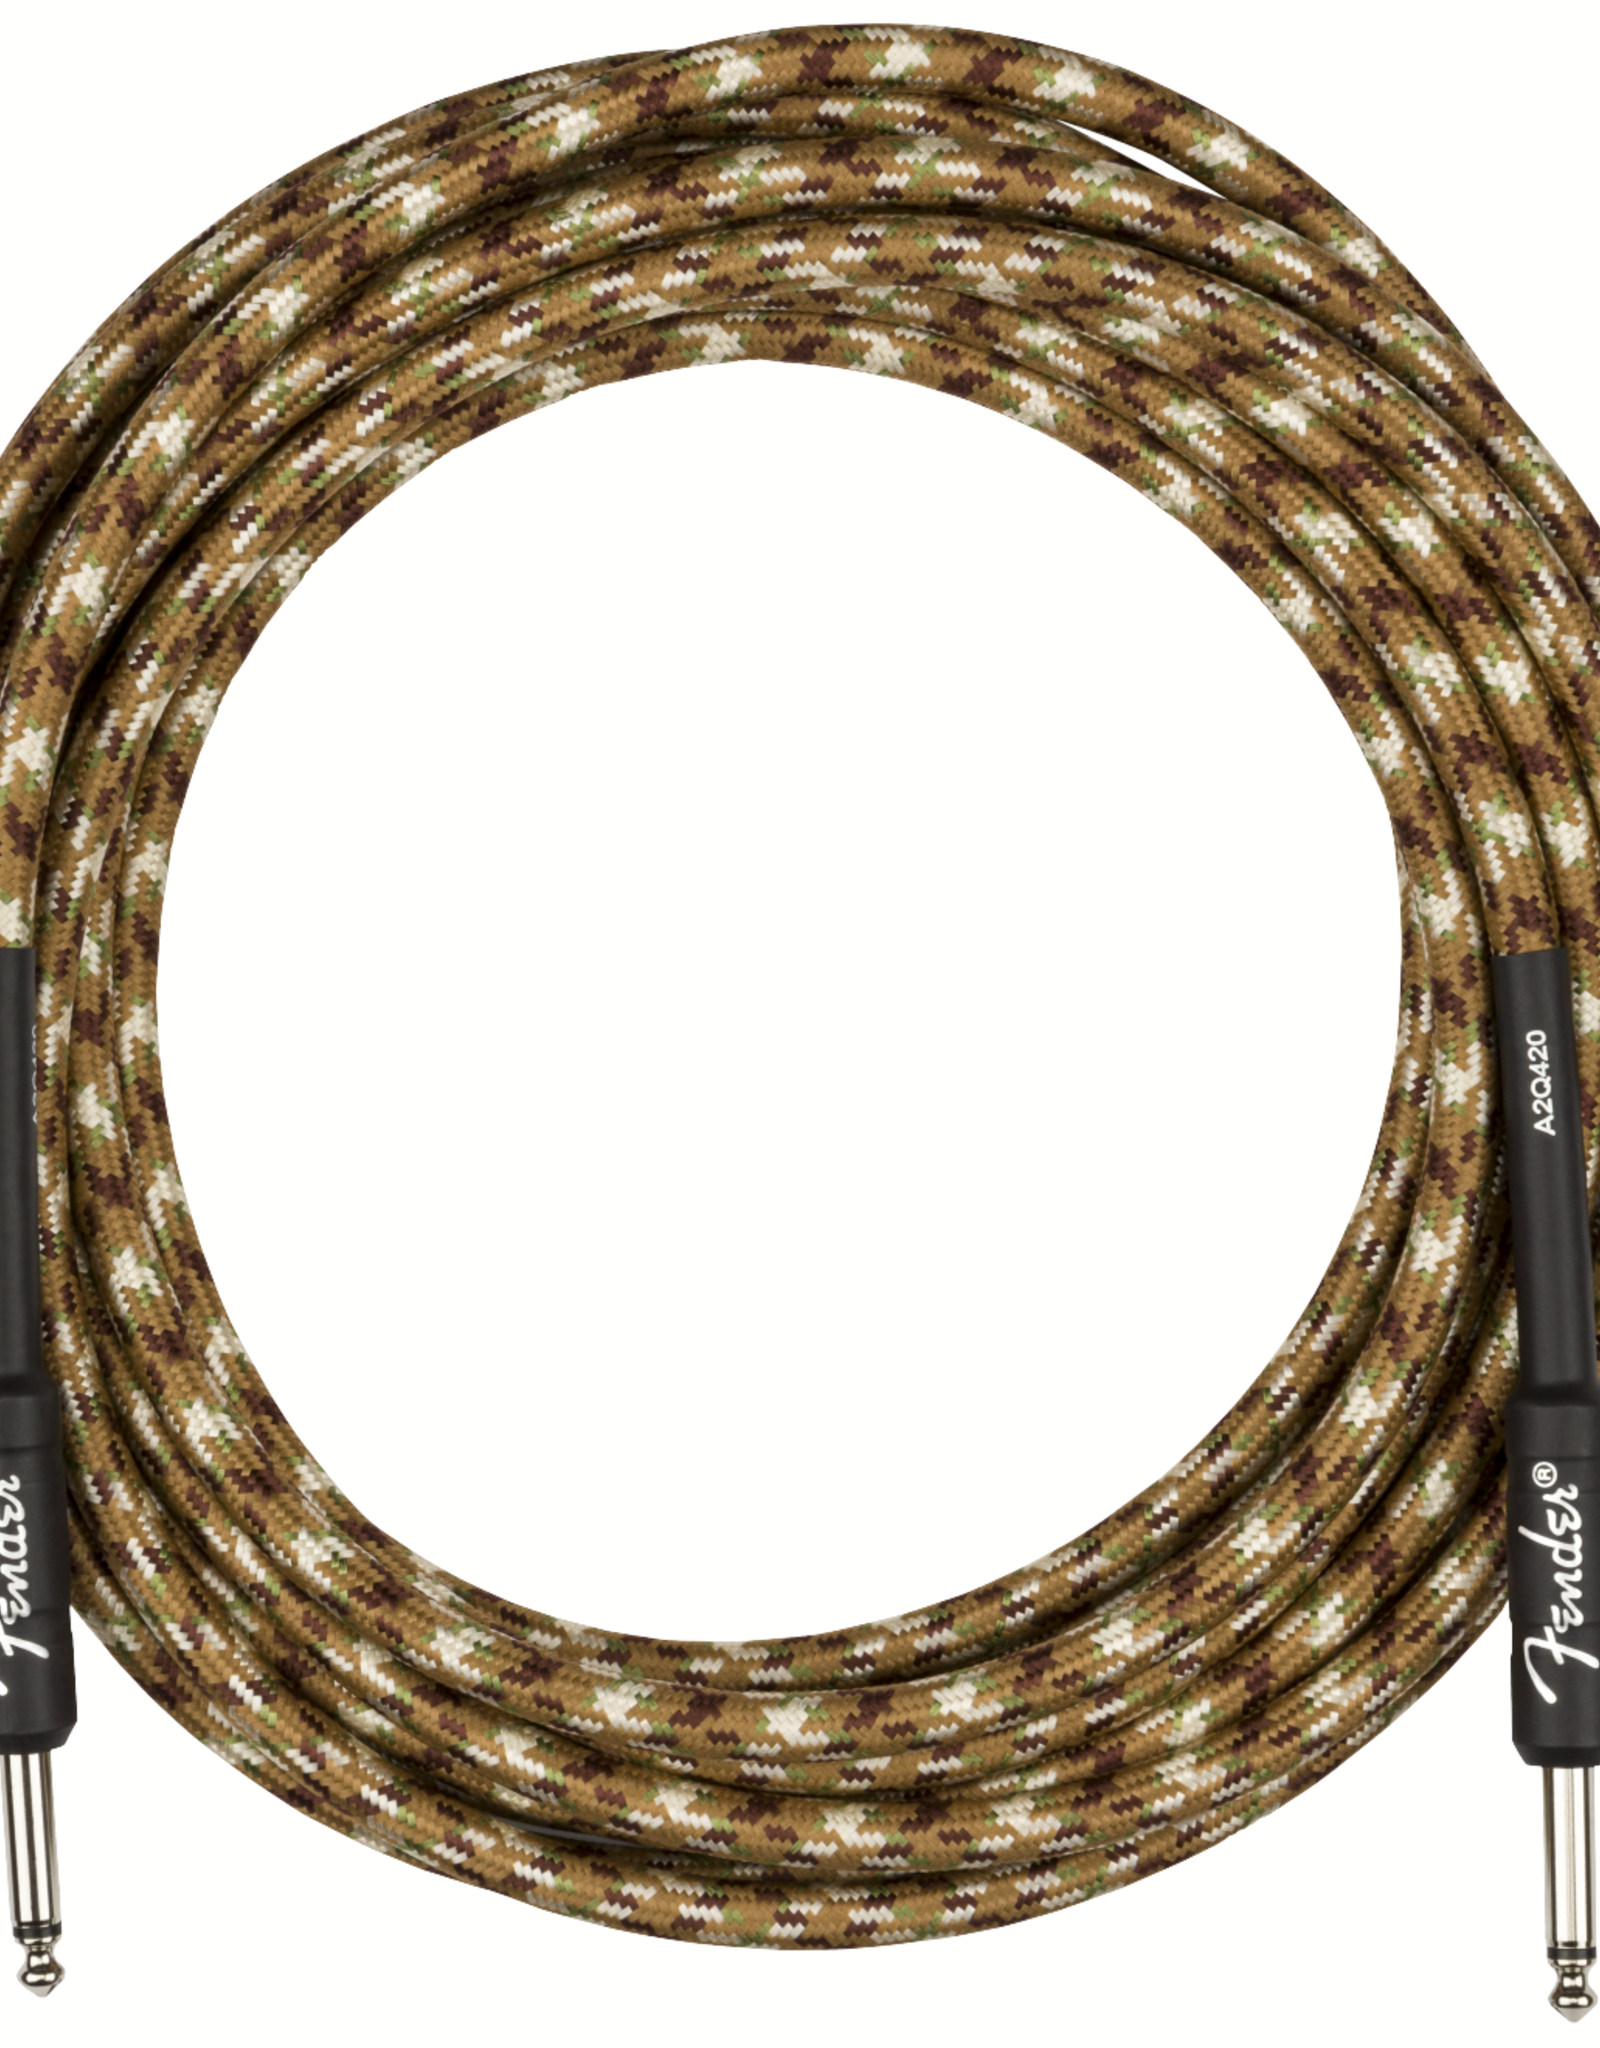 Fender Fender Professional Series Instrument Cable, Straight/Straight, 18.6', Desert Camo